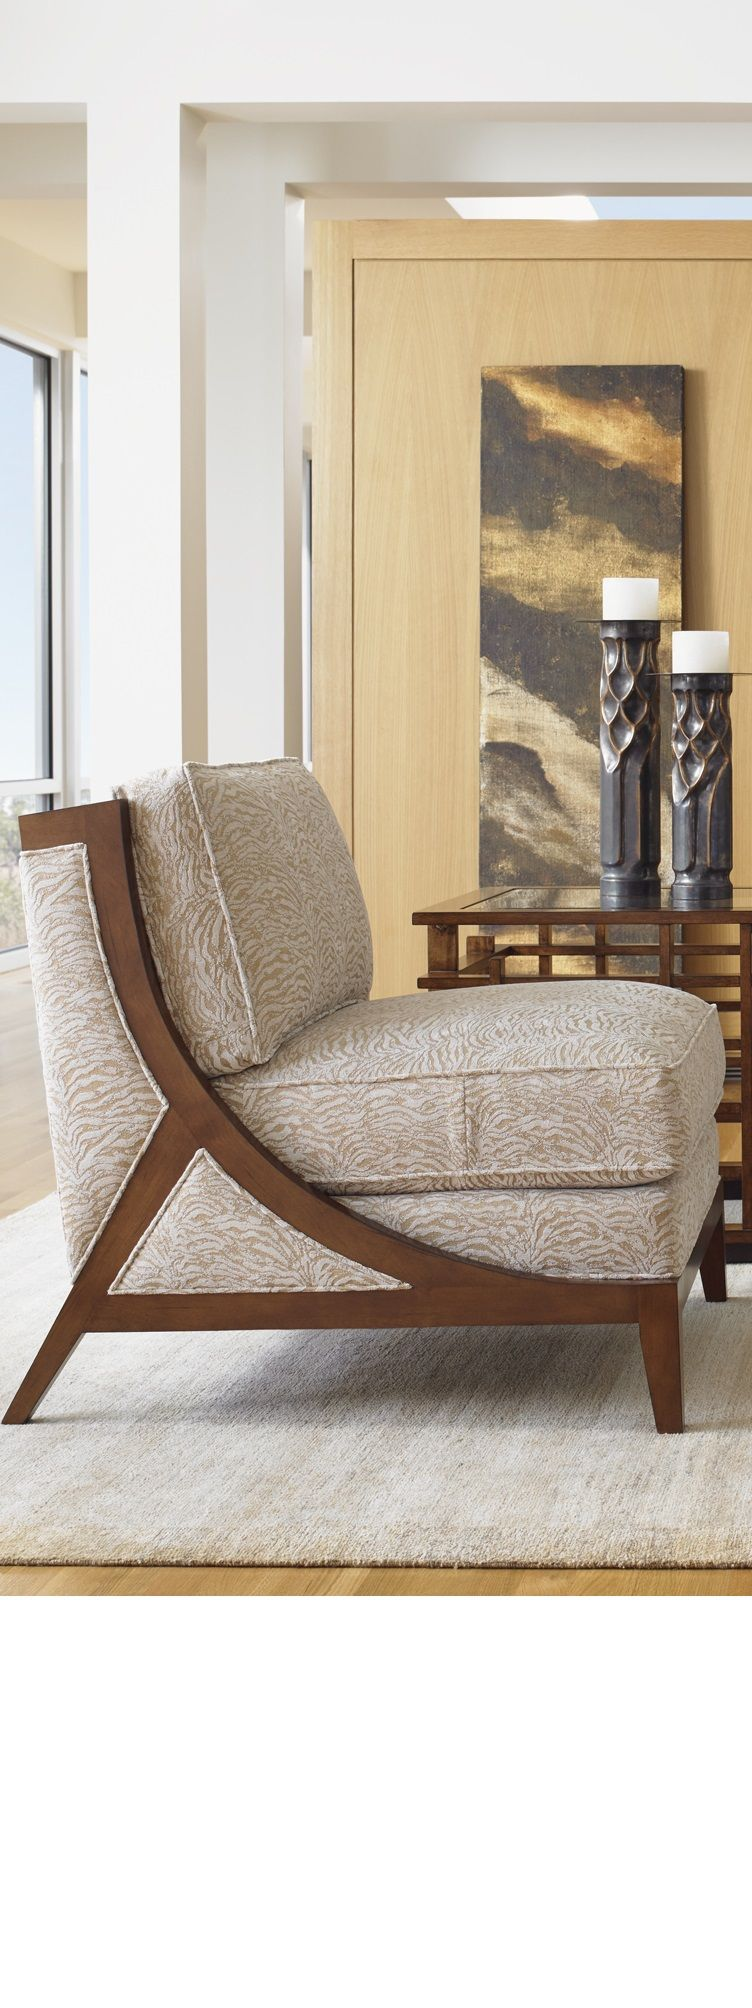 Quot Lounge Chairs Quot Quot Lounge Chair Quot Ideas By Instyle Decor Com